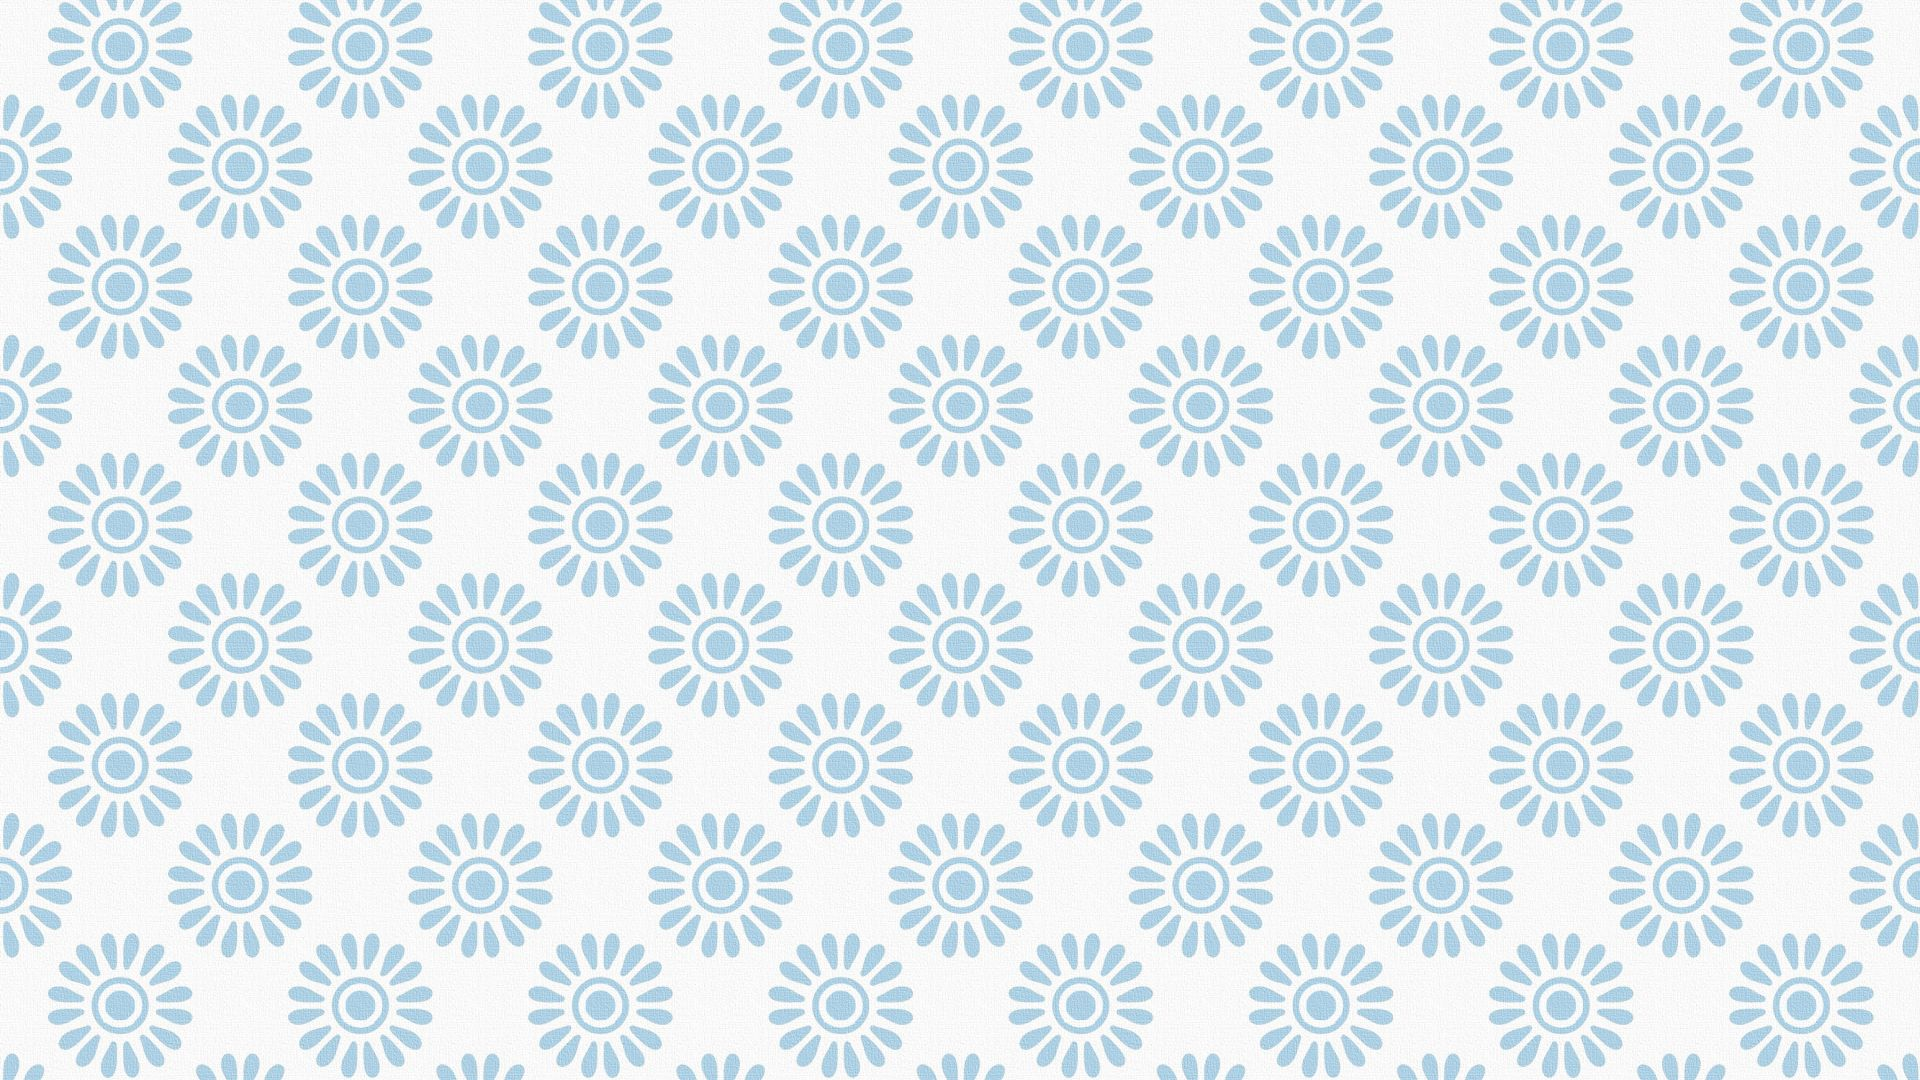 Wallpaper Blue flowers, floral pattern, abstract